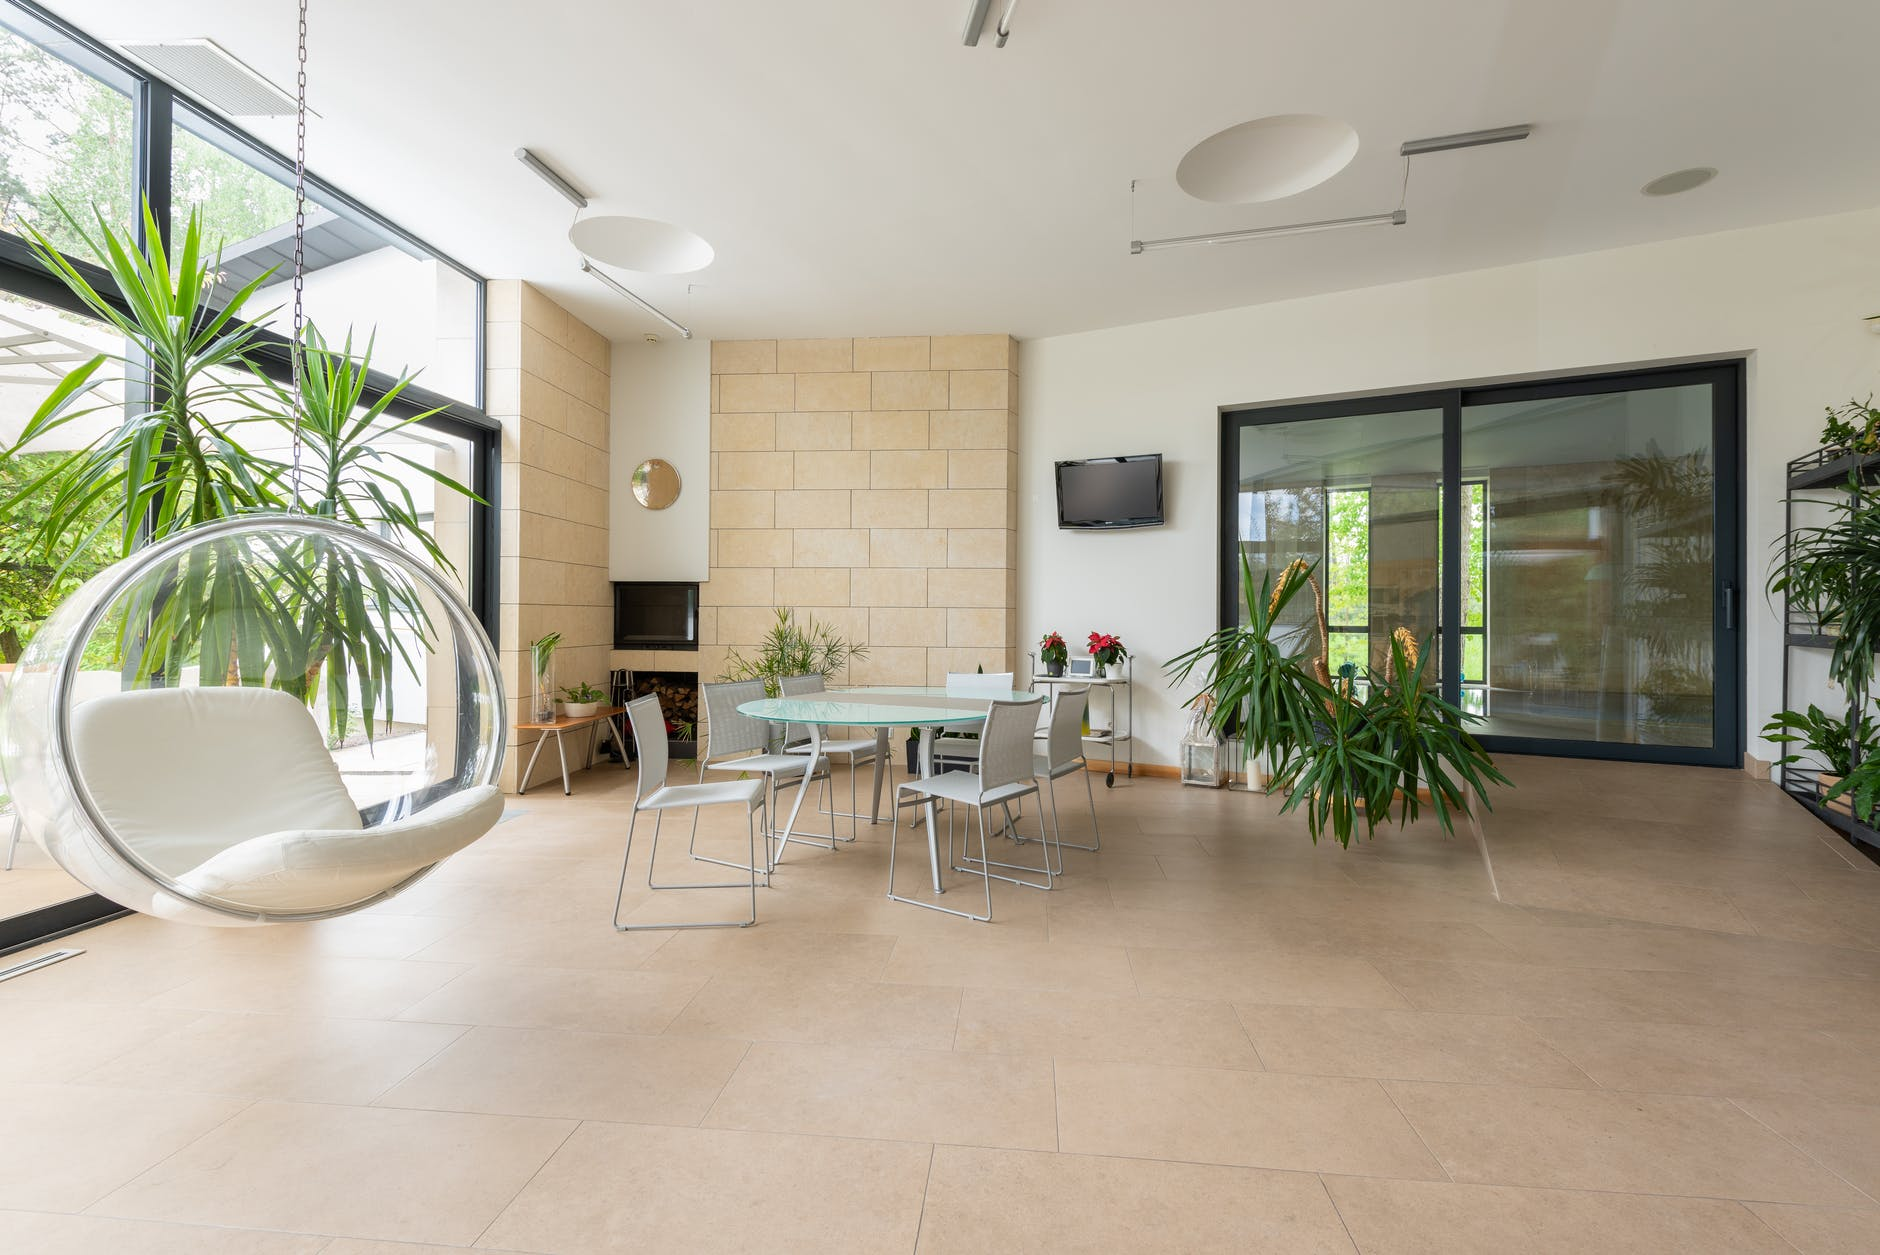 The pros and cons of false ceilings